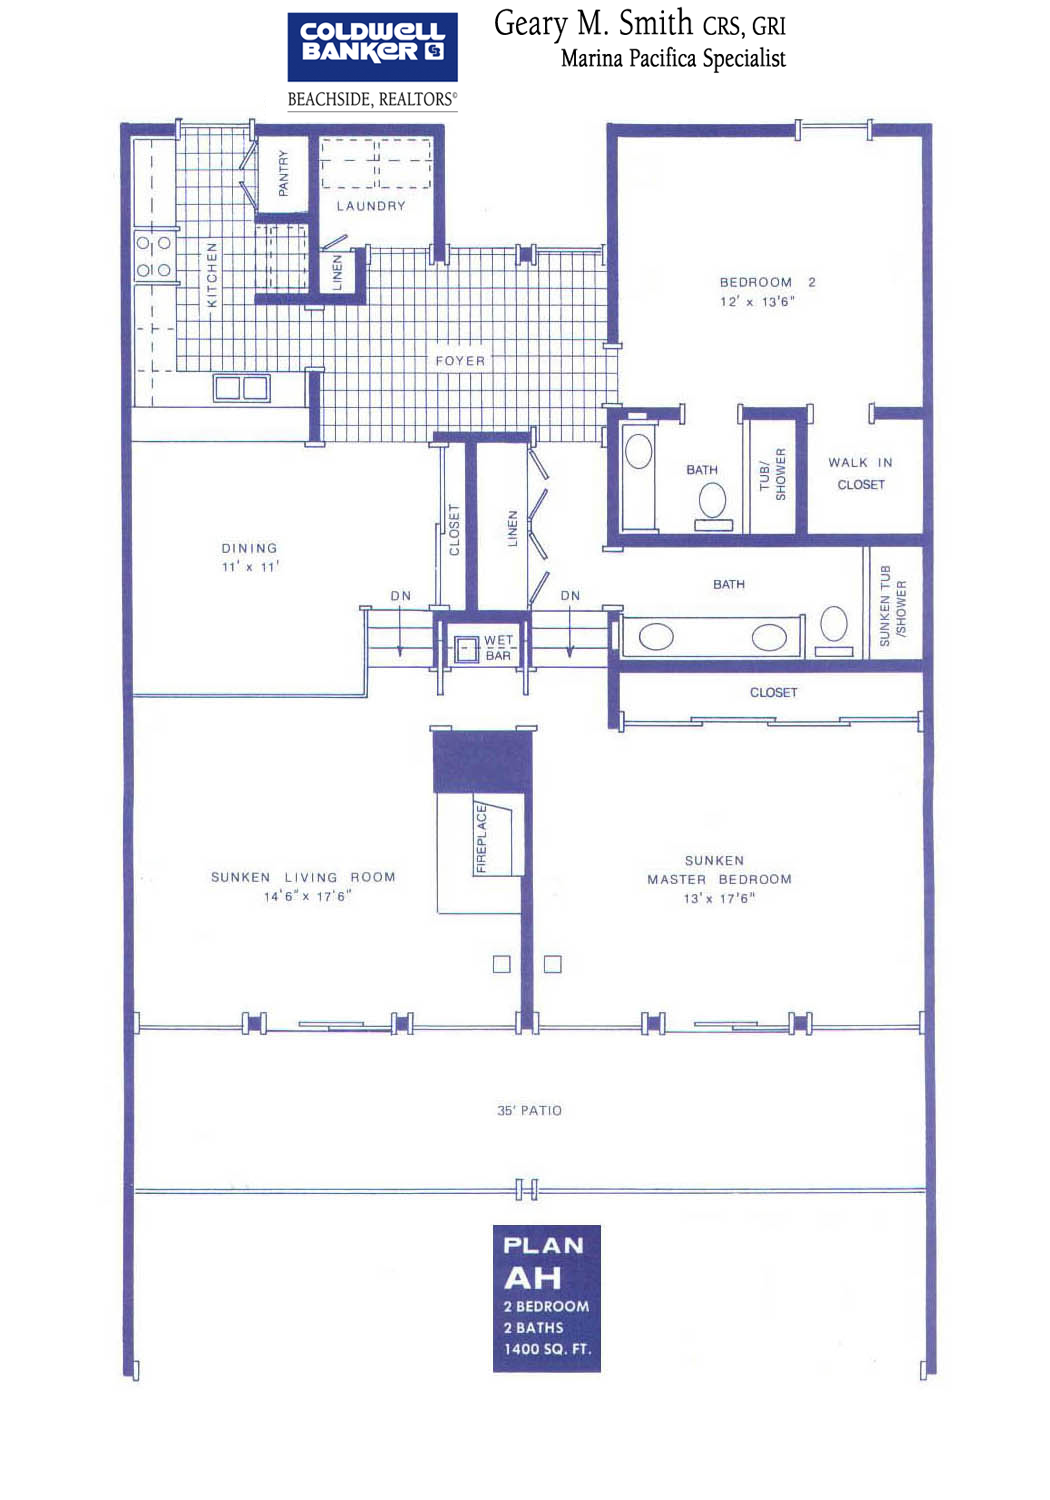 Floor Plans Marina Pacifica